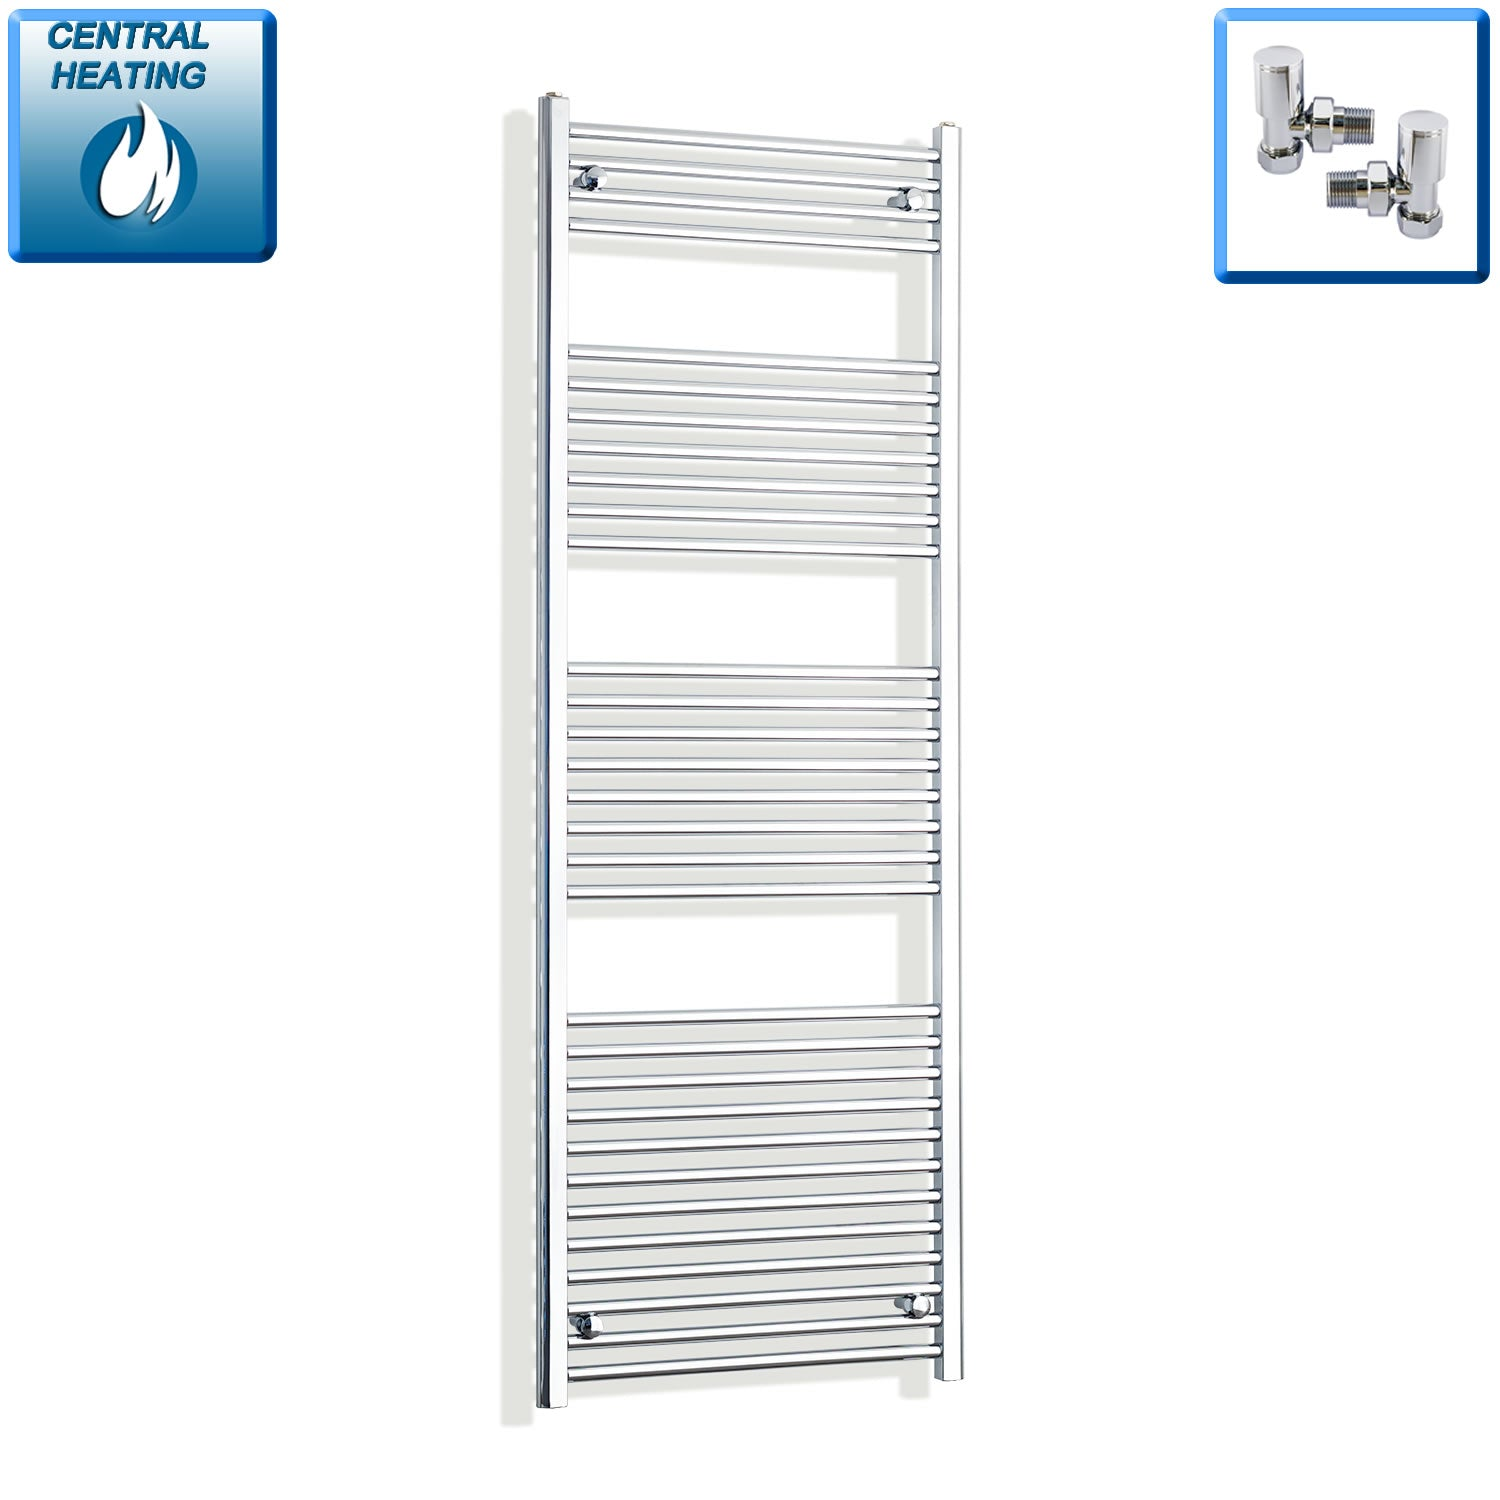 650mm Wide 1800mm High Chrome Towel Rail Radiator With Angled Valve